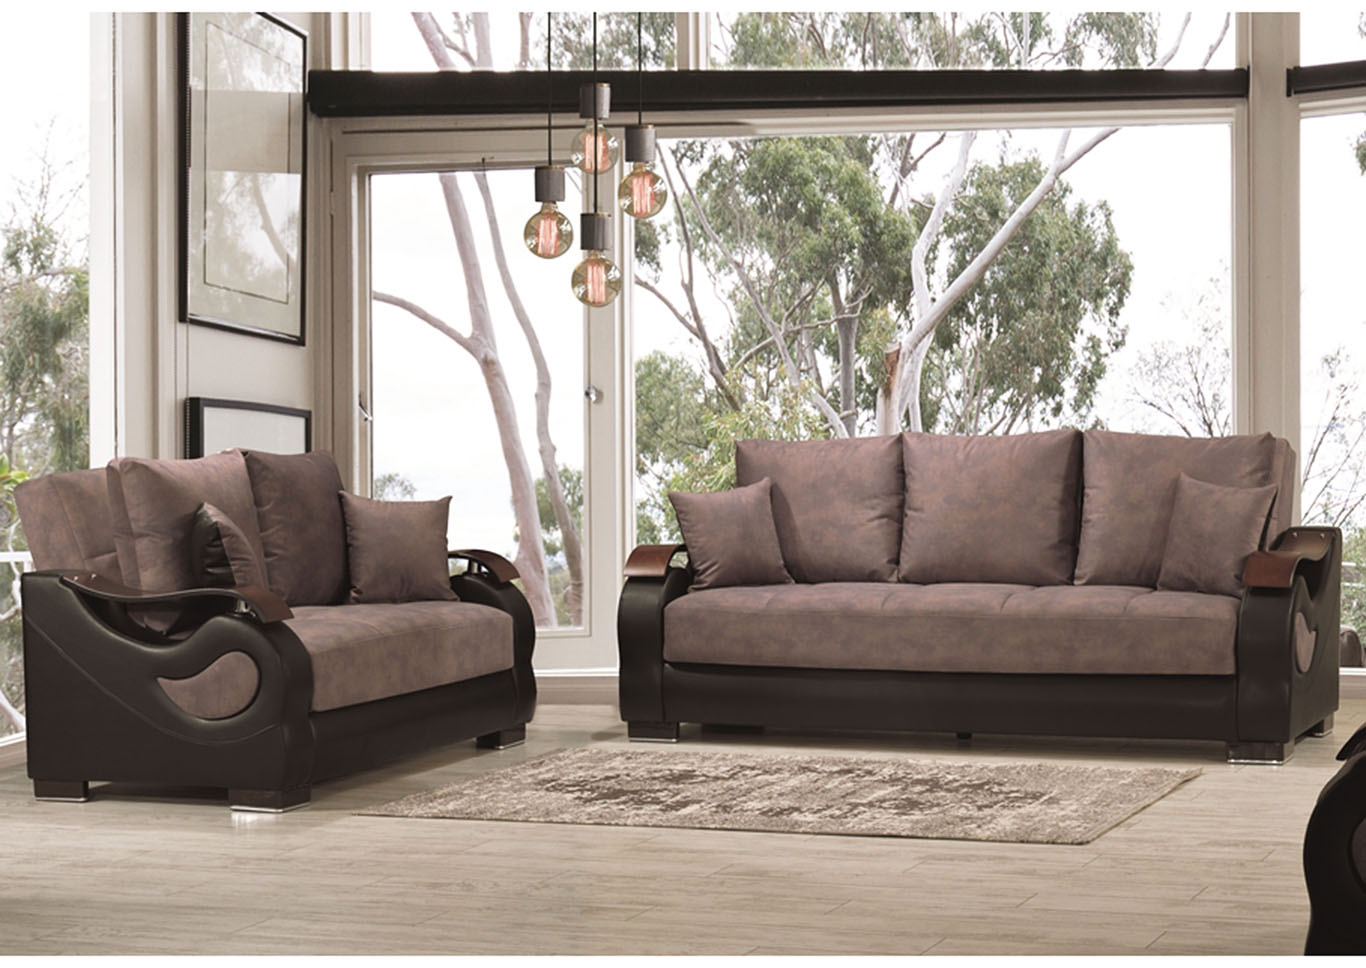 Metroplex Gray Microsuede Sofabed & Loveseat,CasaMode Functional Furniture